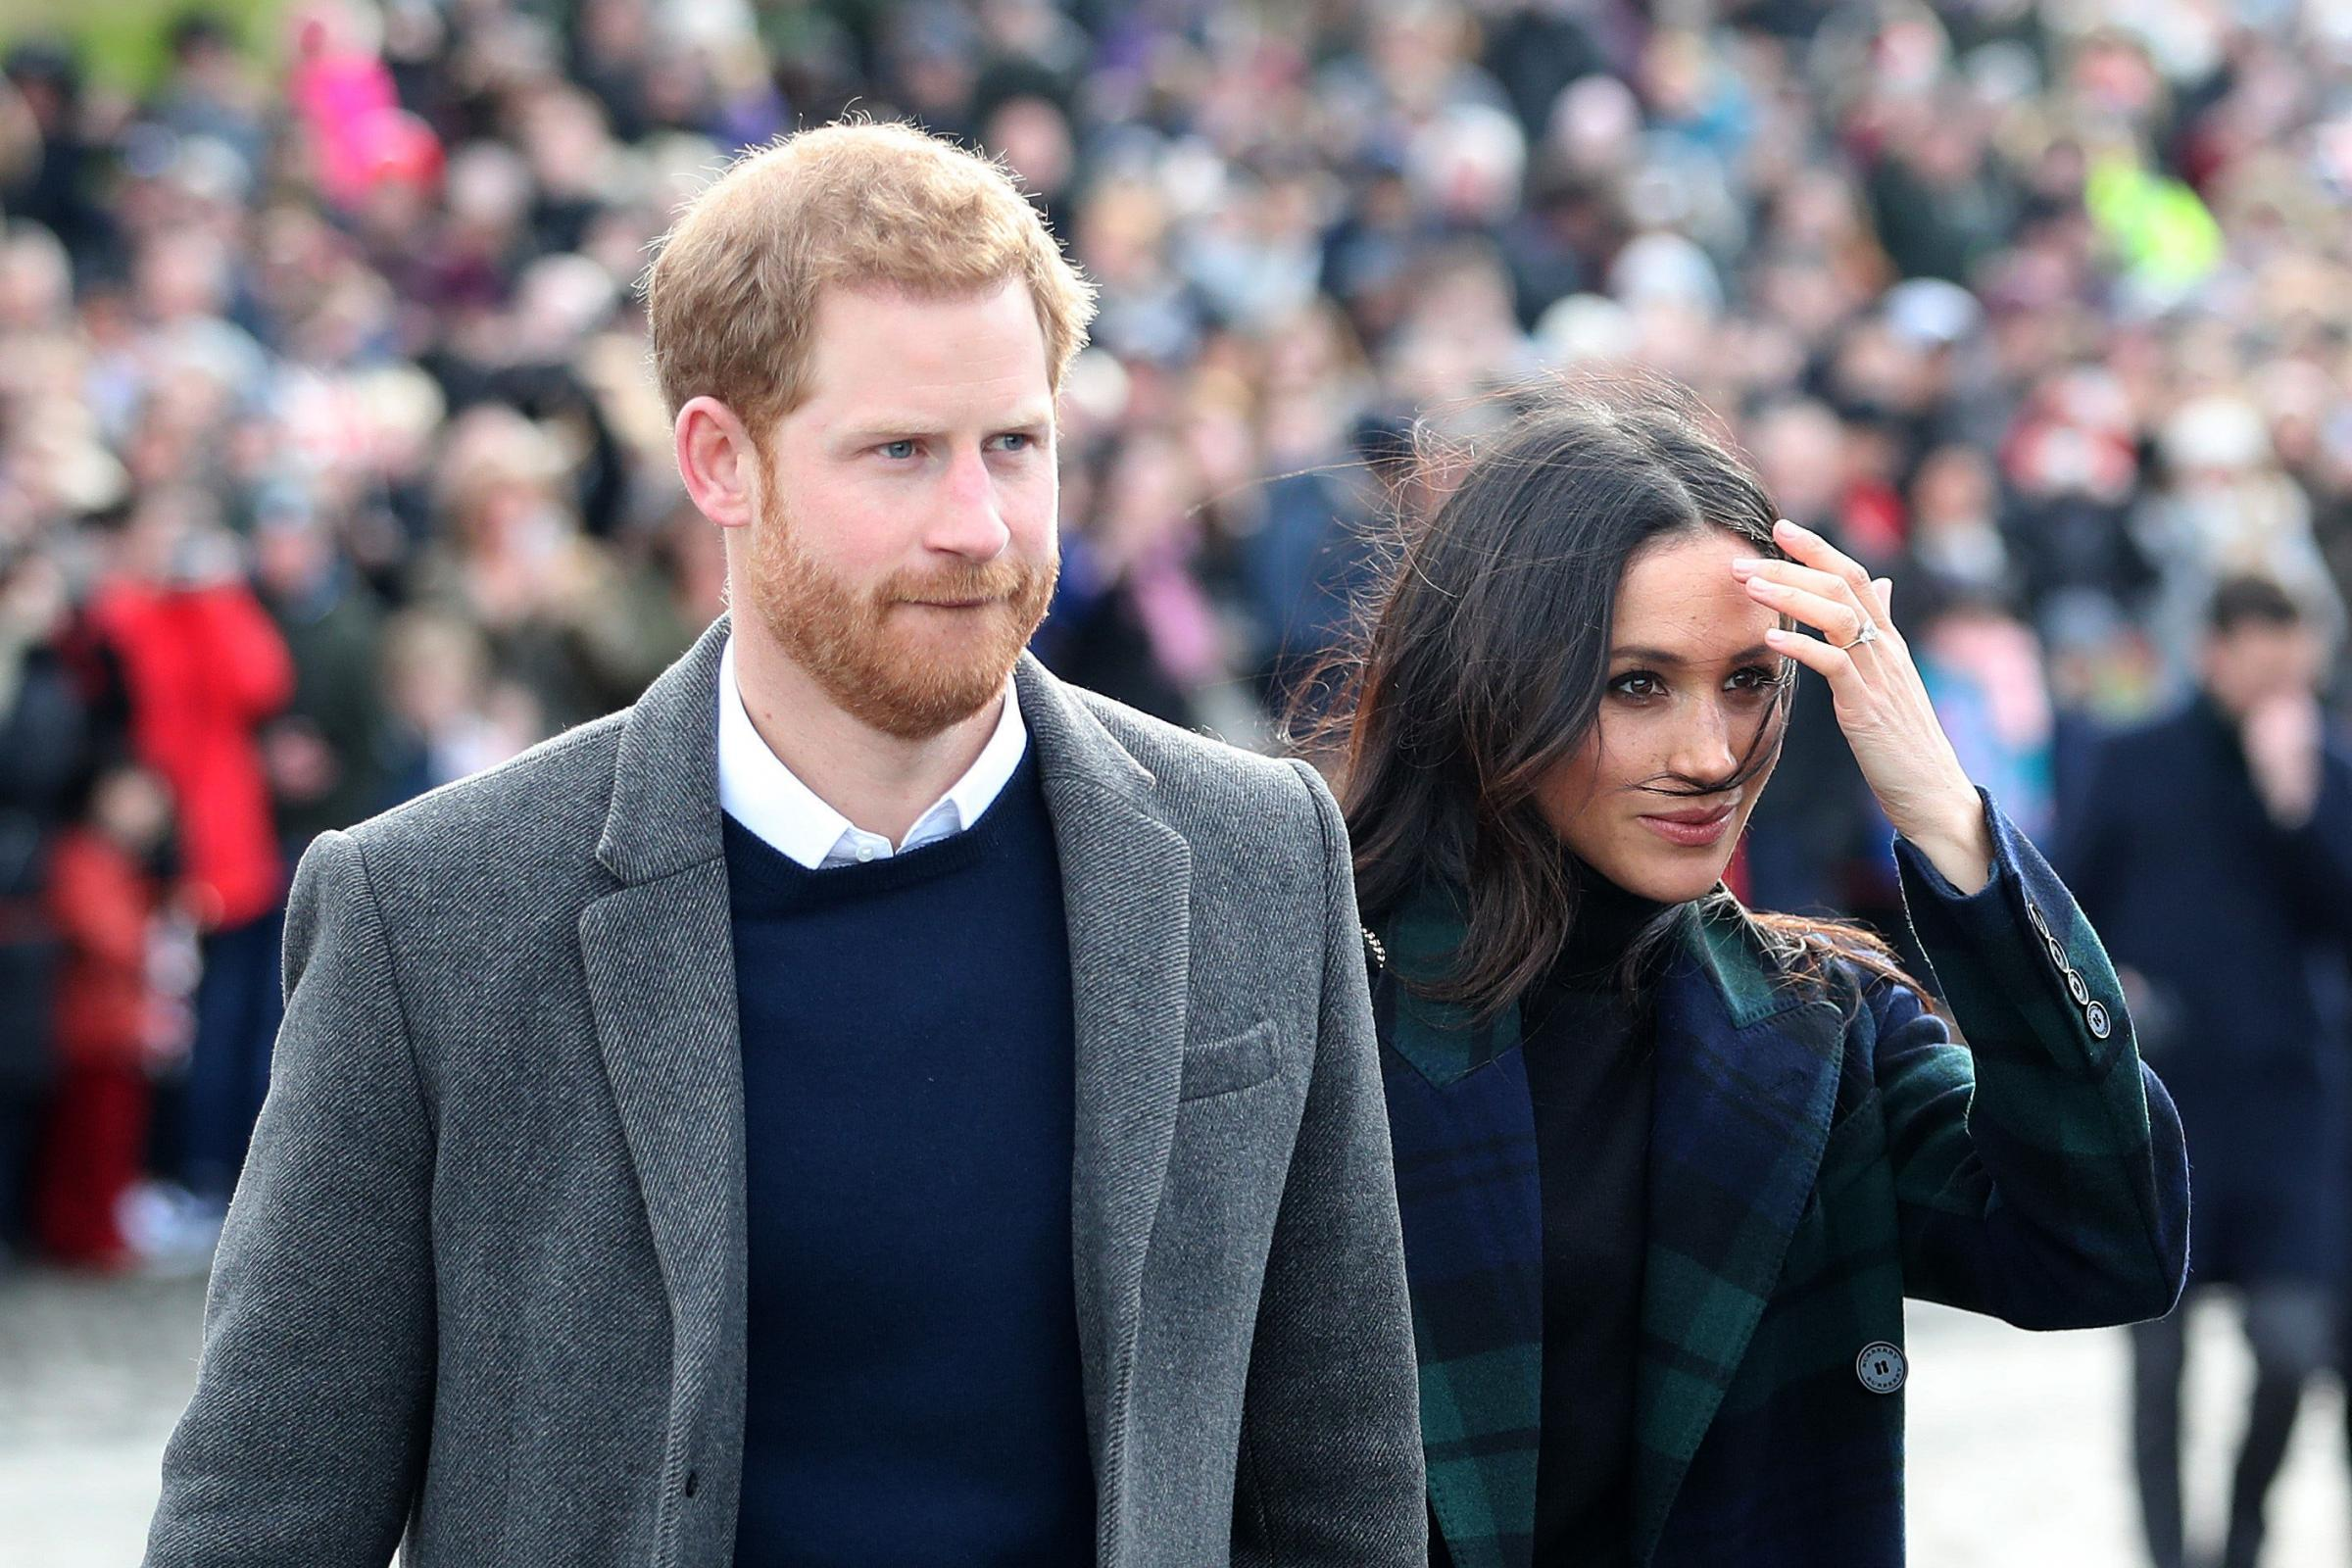 Prince Harry and Meghan Markle at Edinburgh Castle, during their visit to Scotland (Jane Barlow/PA)